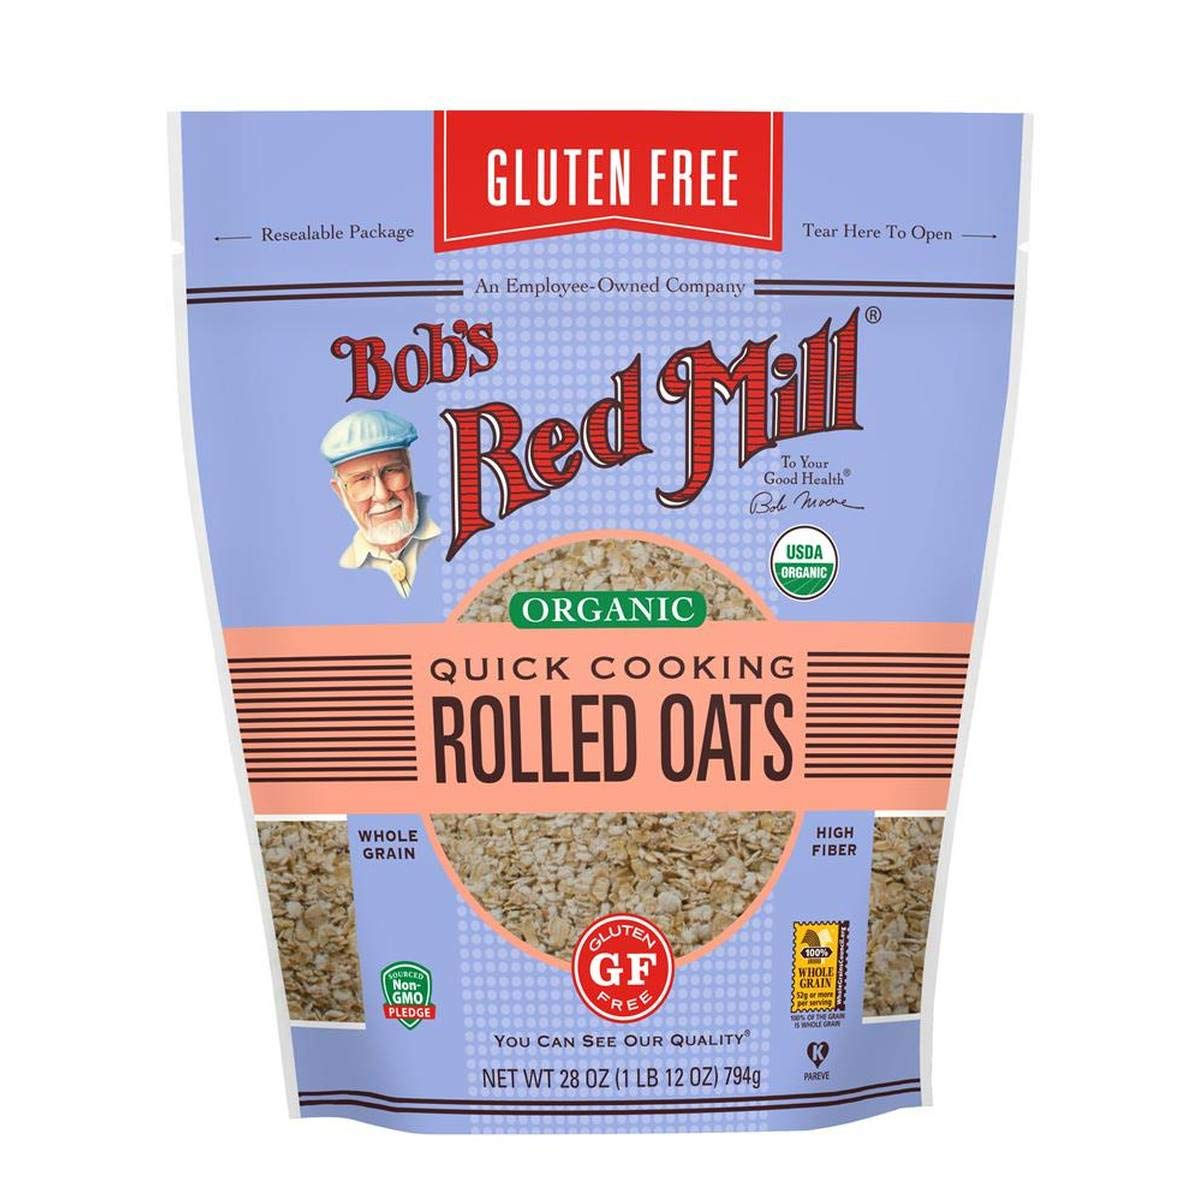 Bob's Red Mill (Resealable) Gluten Free Organic Quick Cooking Oats, 28-ounce (Pack of 4) by Bob's Red Mill